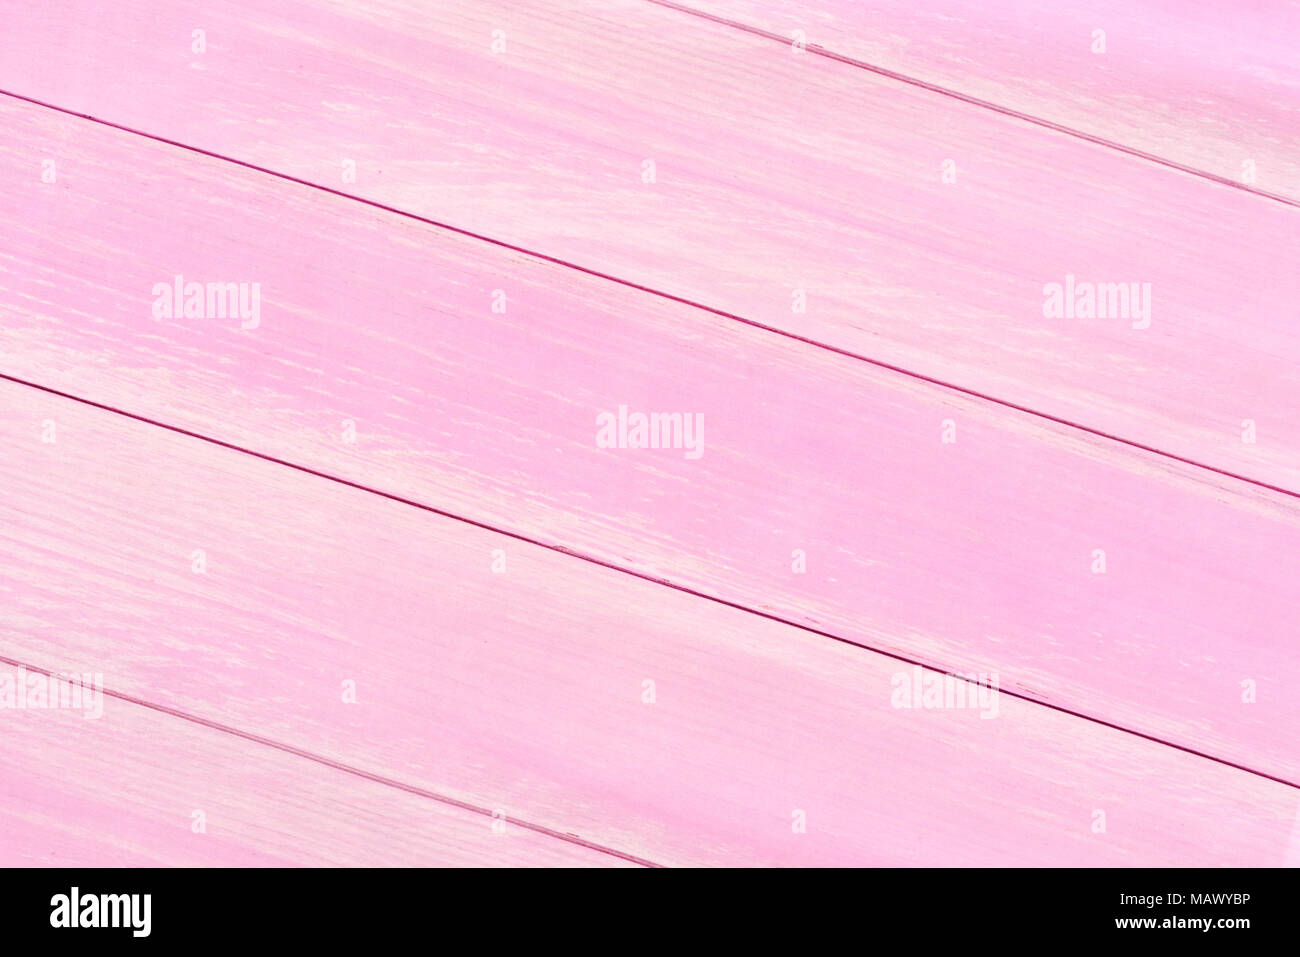 Wooden planks background with copy space. Pink planks or wooden table background or backdrop. - Stock Image